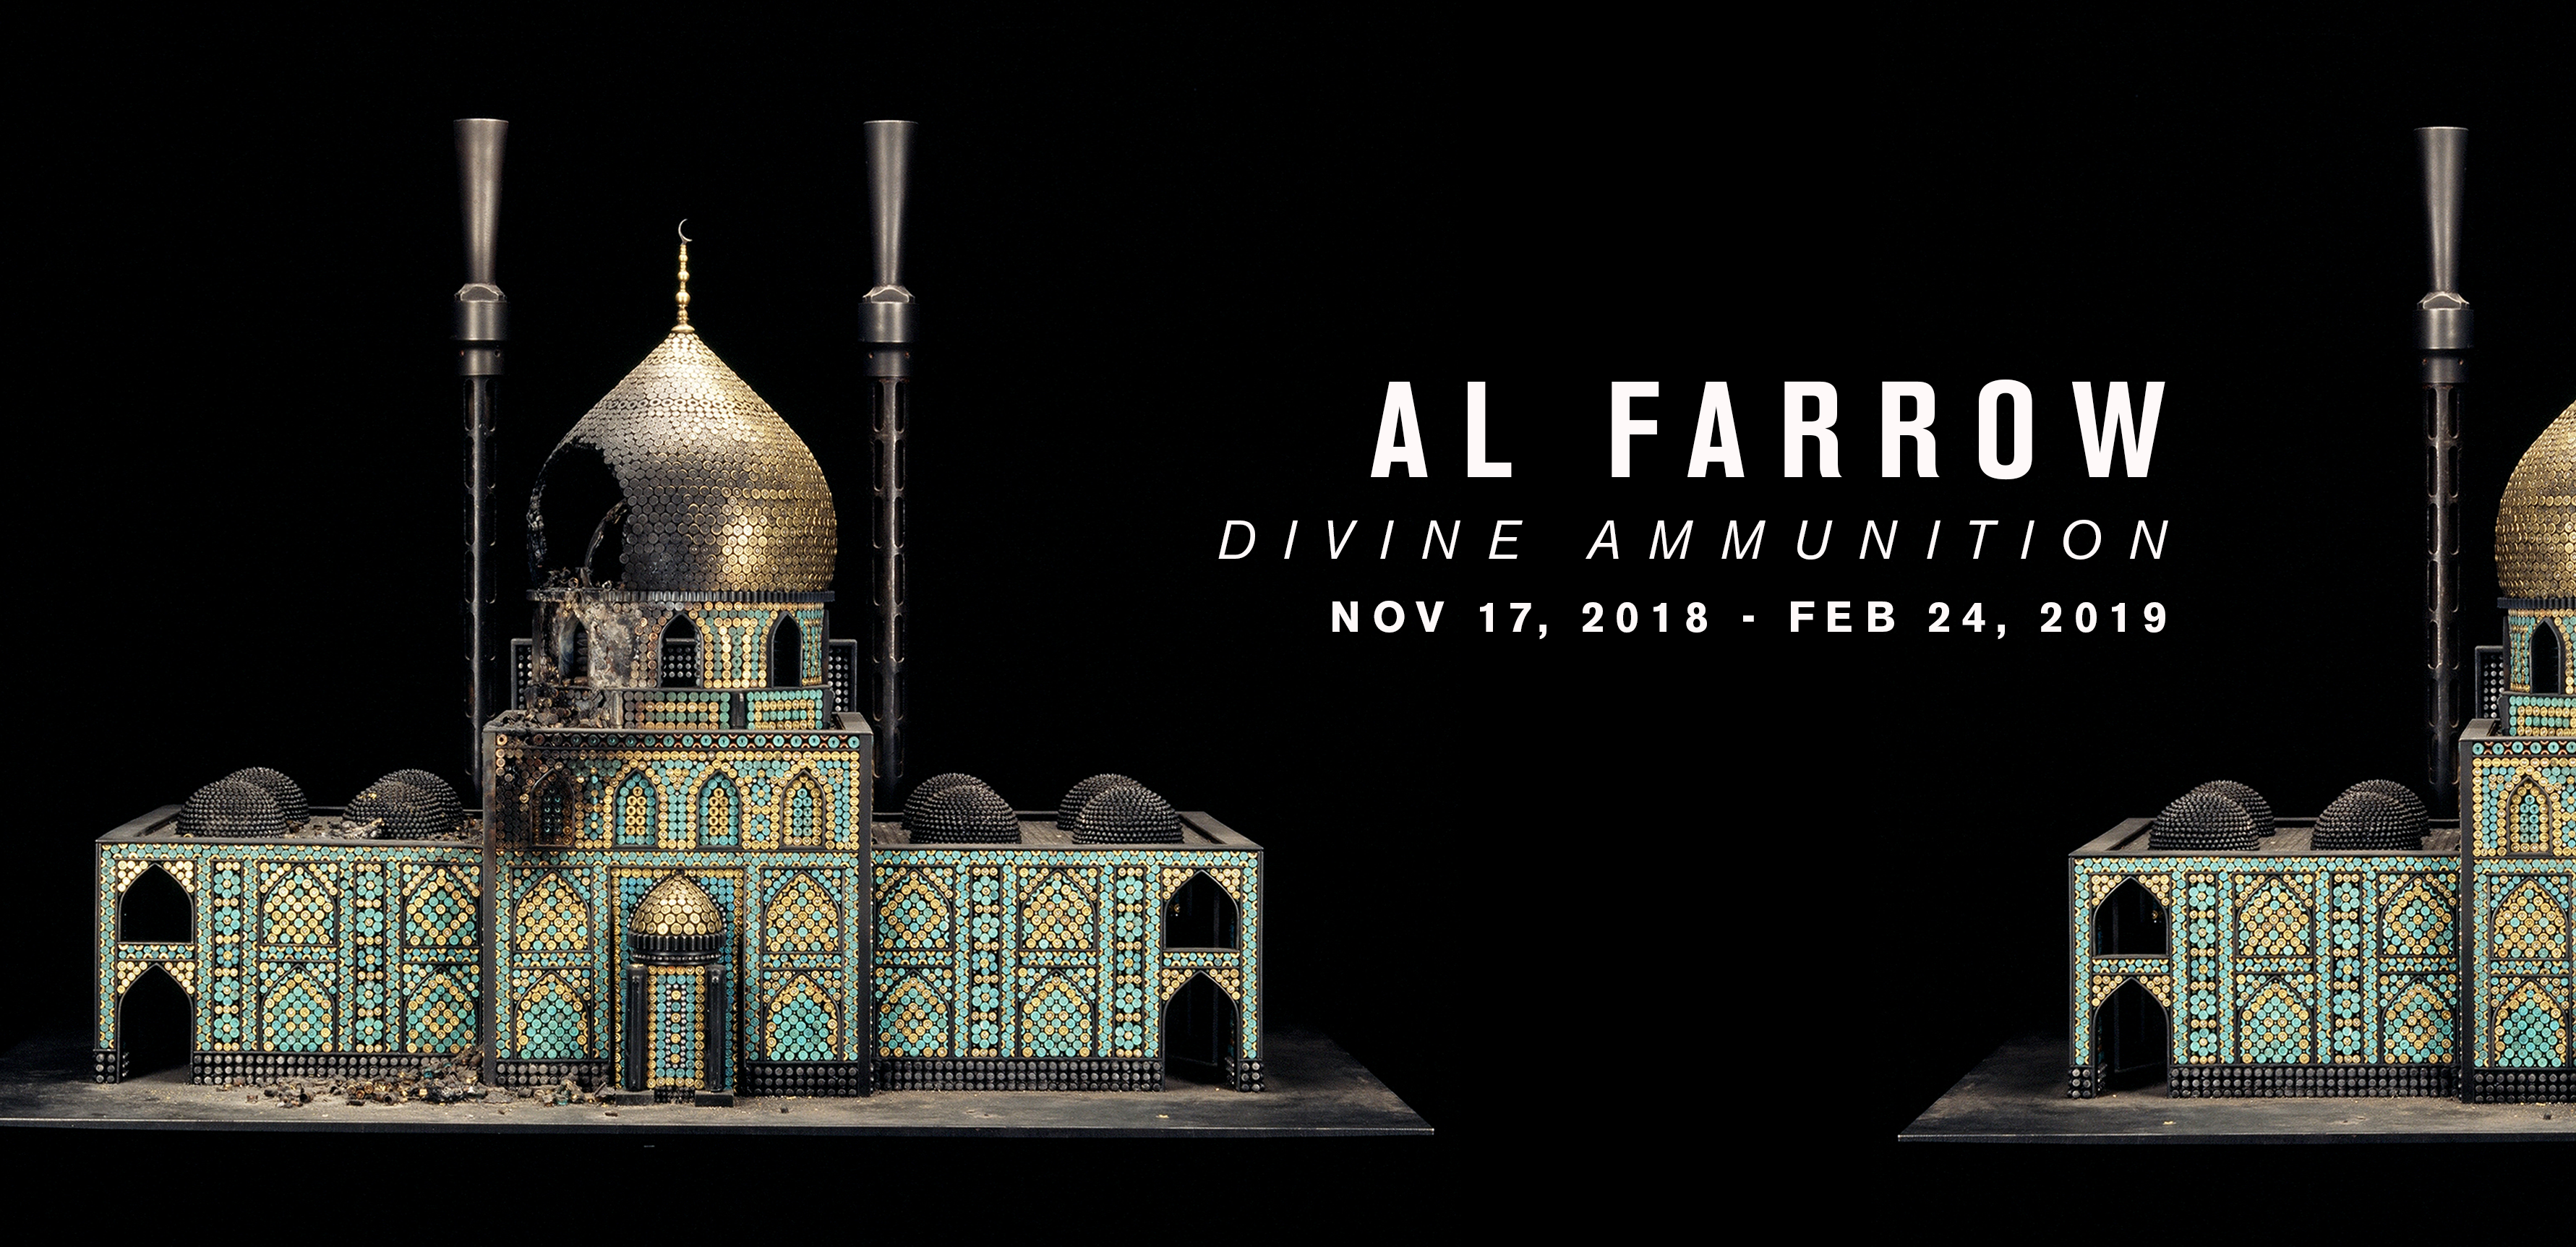 Al Farrow: Divine Ammunition at the Museum of Craft and Design